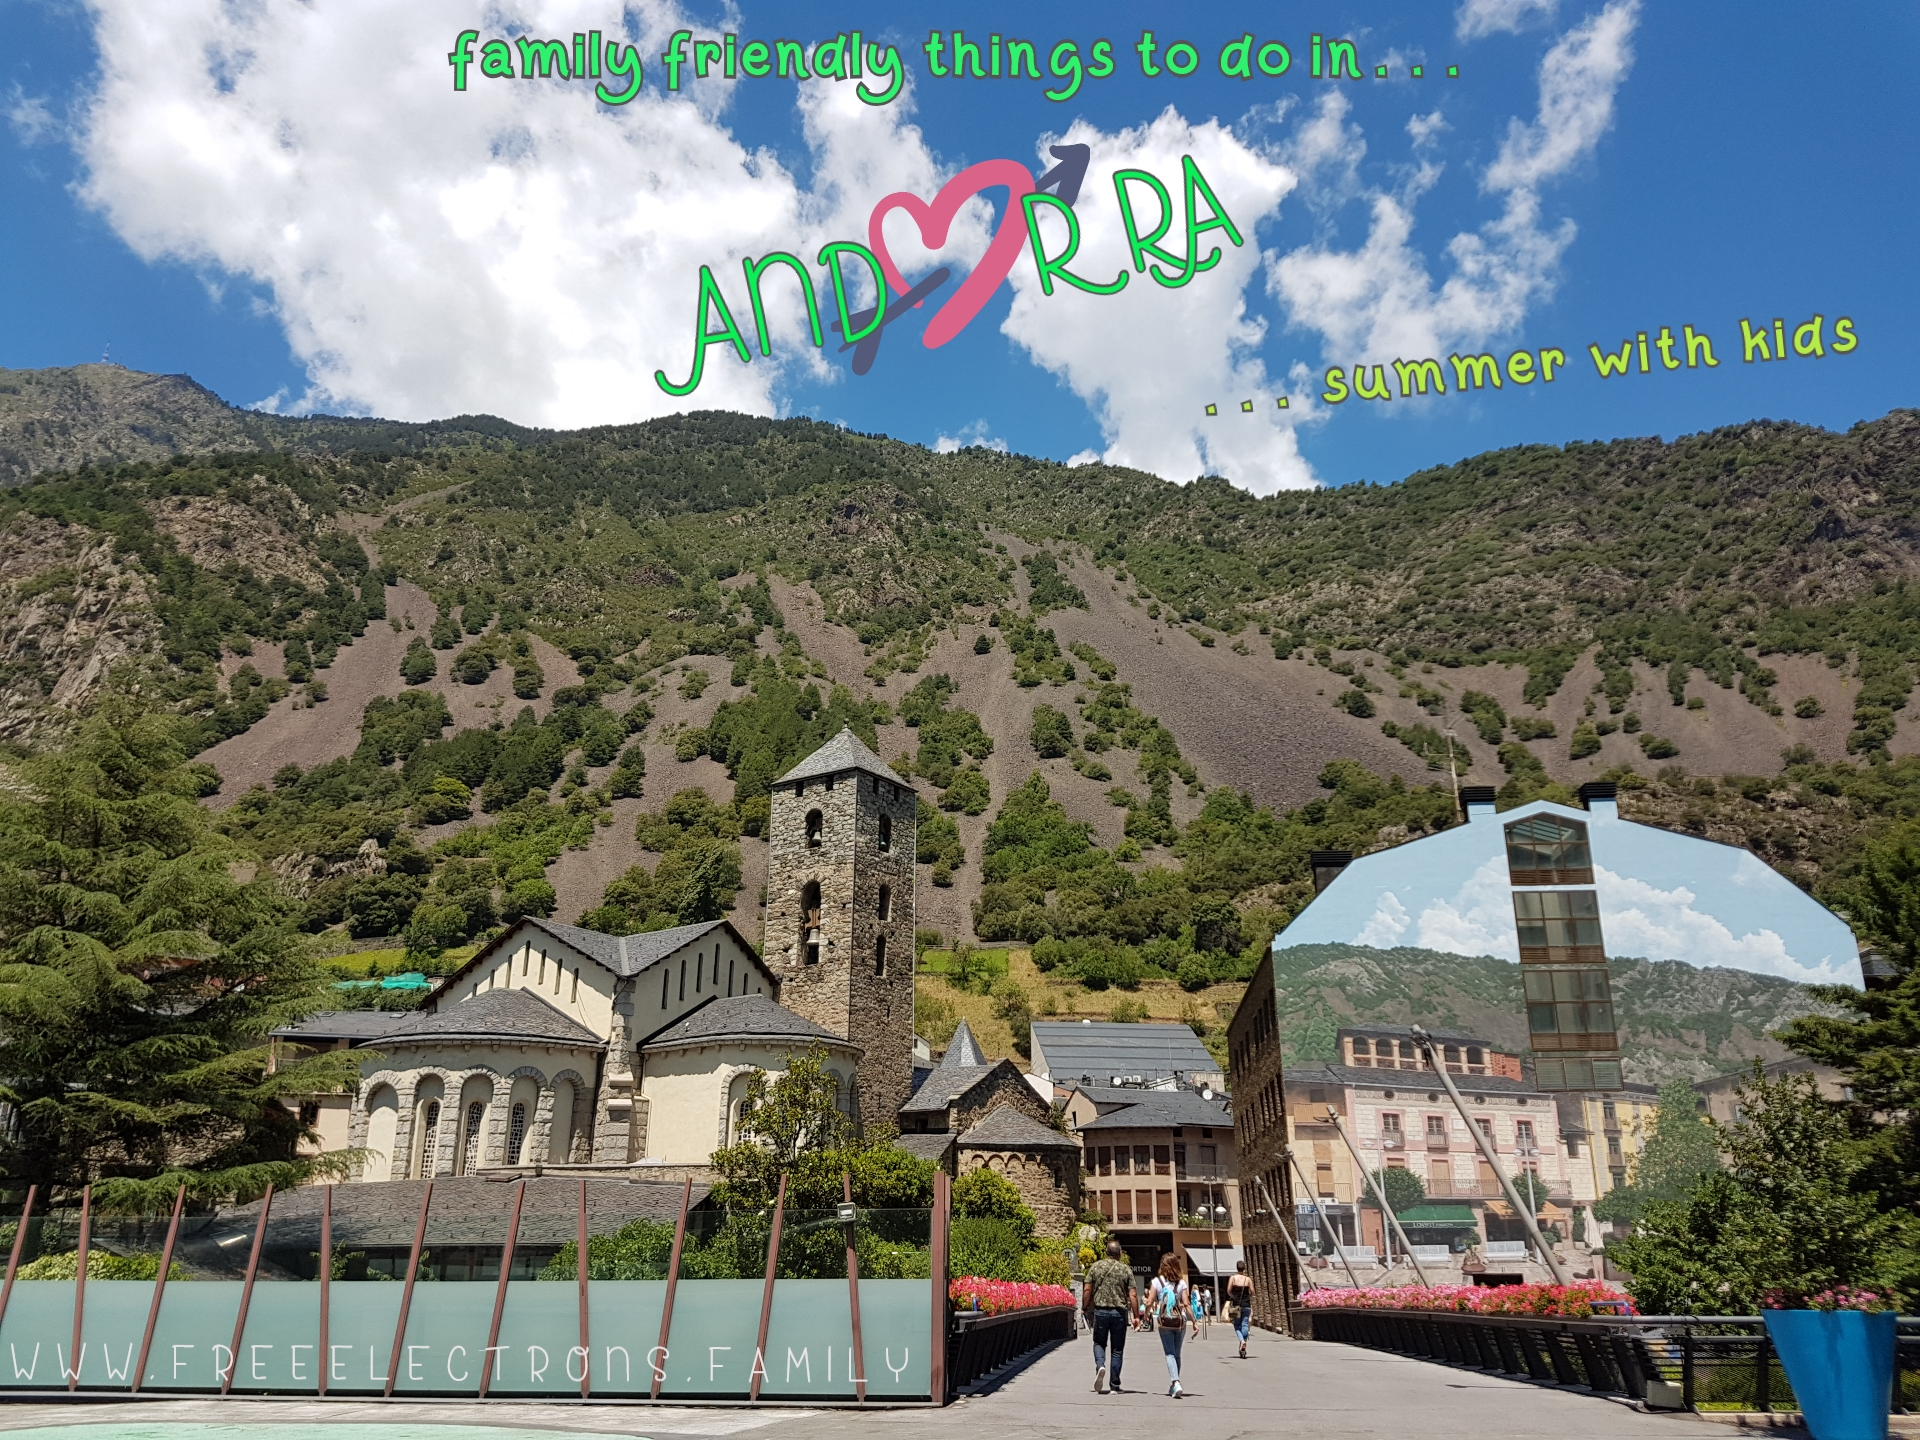 #FreeElectrons.Family - camping road trip Europe, Andorra la Vella.  Sant Esteve Parish Church and a building whose mural makes it blend in the mountain side background, under bright blue sky.  Text reads:  family friendly things to do in . . .  Andorra, summer with kids... www.freeelectrons.family